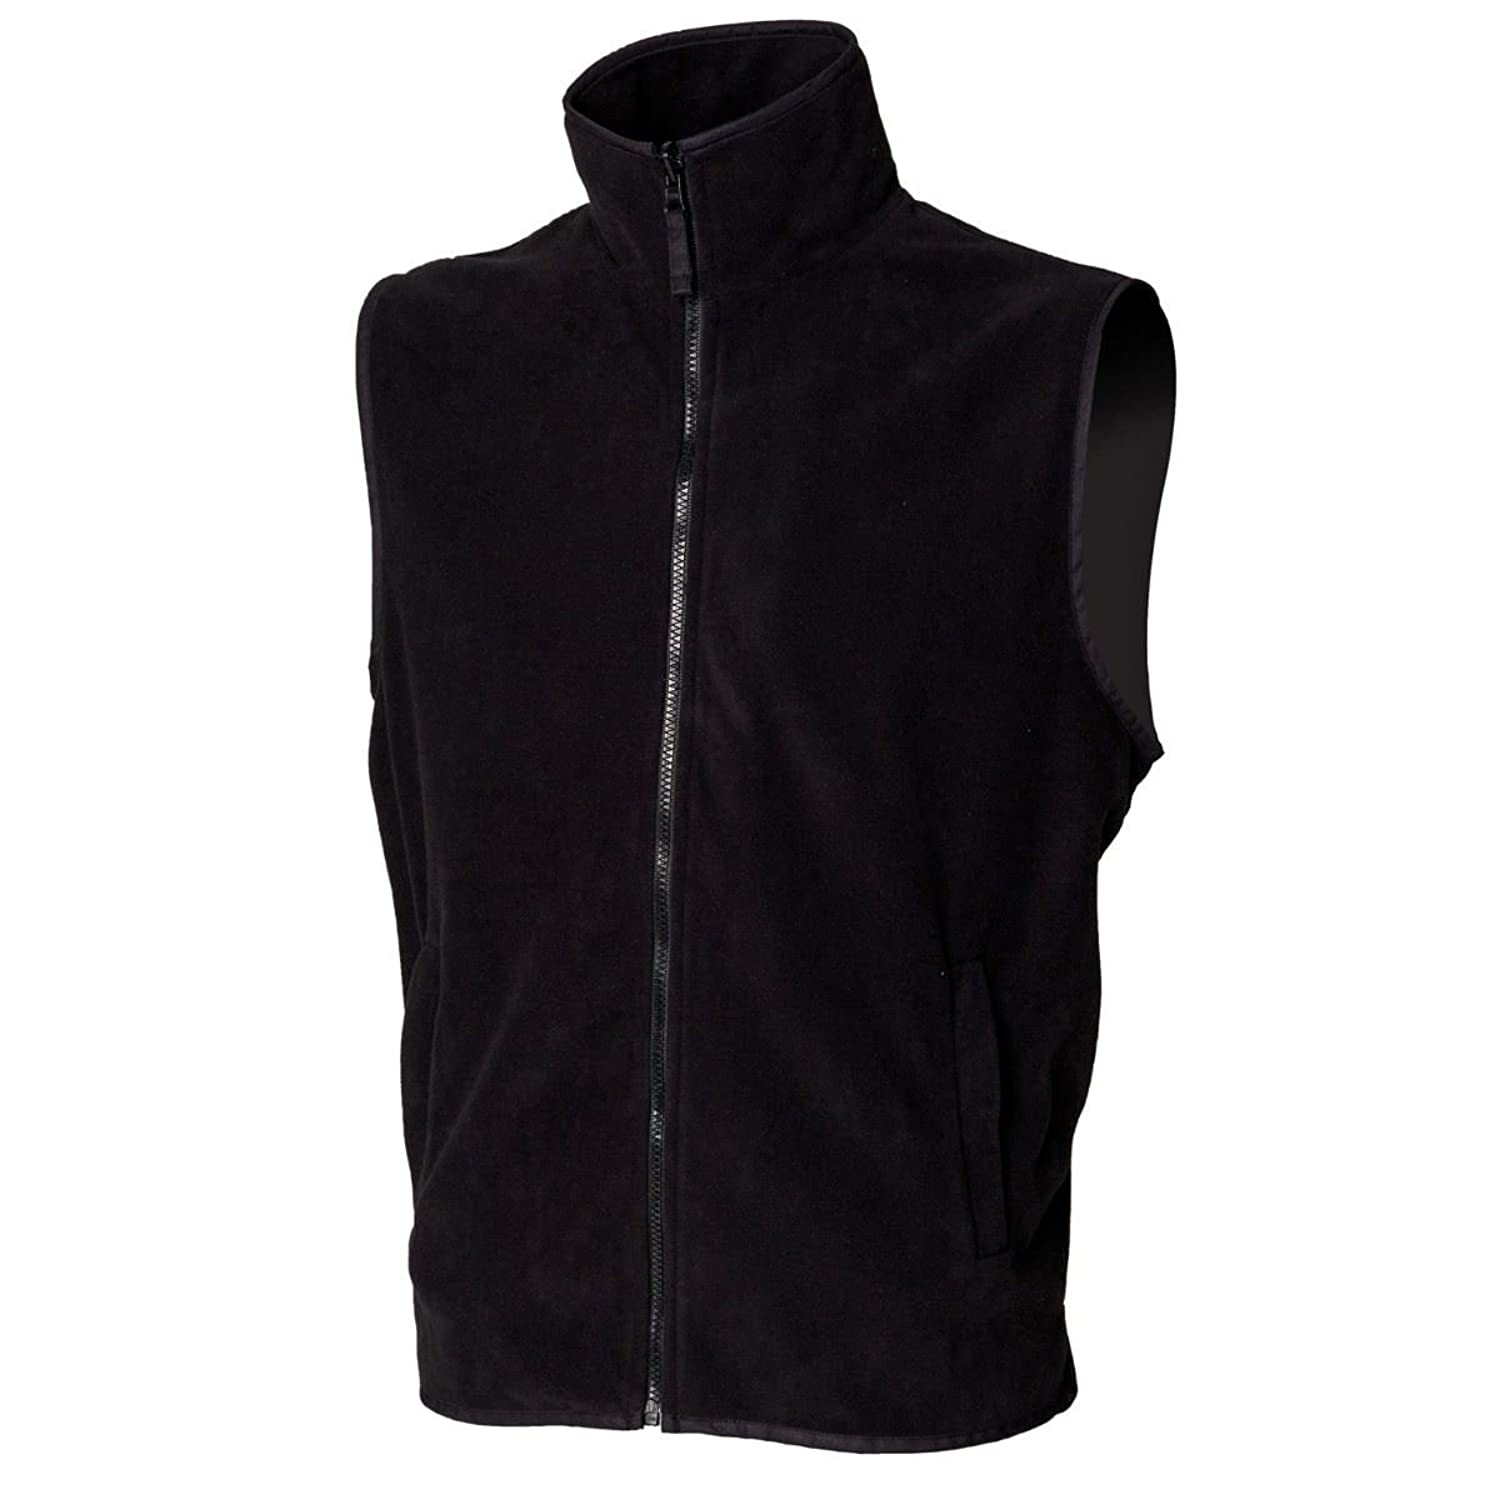 Henbury H855 Mens Sleeveless Microfleece Jacket Black S